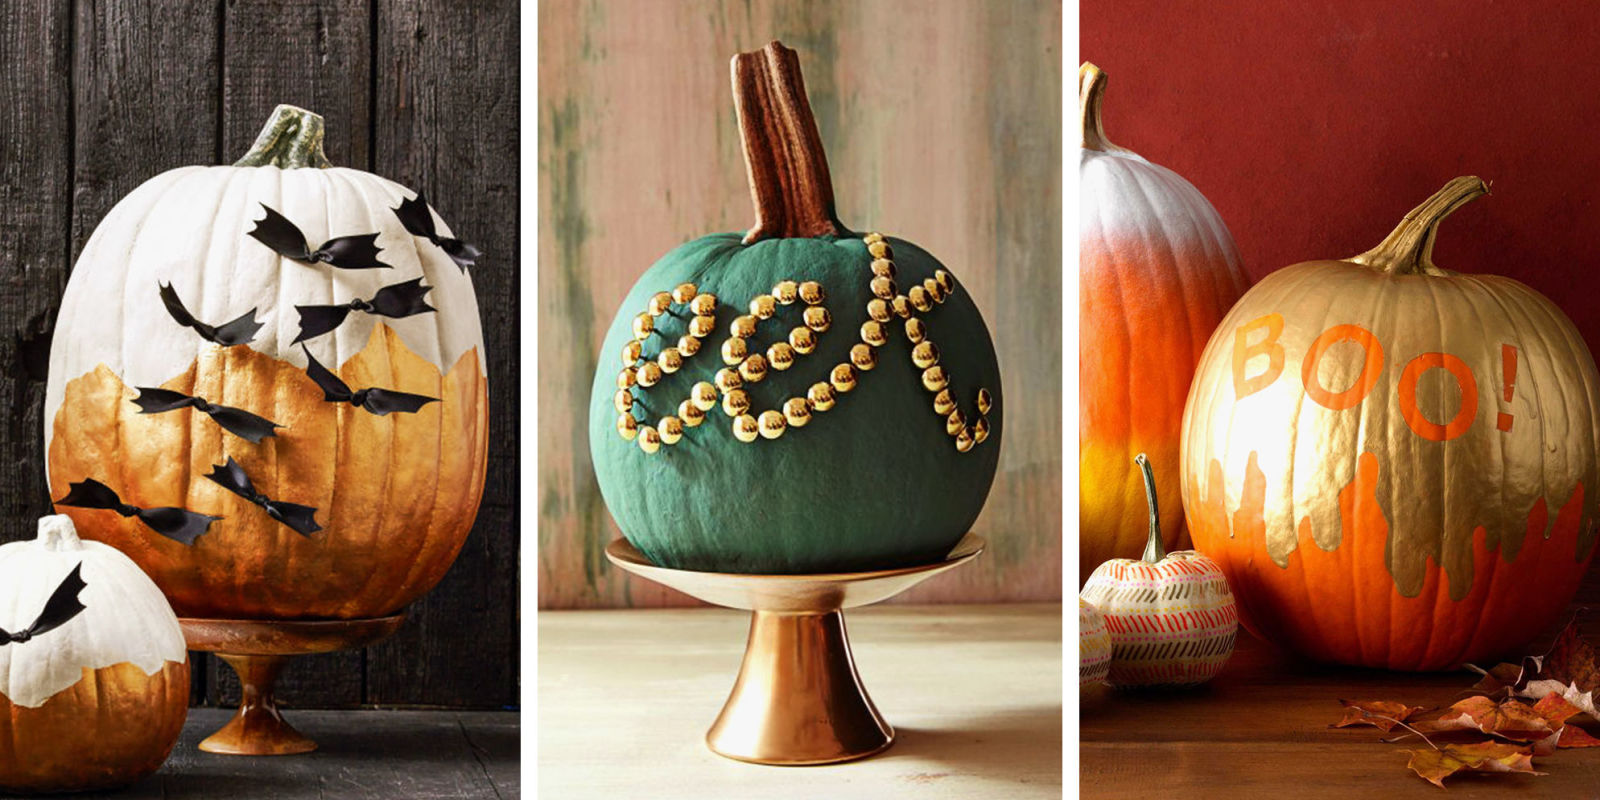 15 Best Pumpkin Decorating Ideas For Halloween 2018 No